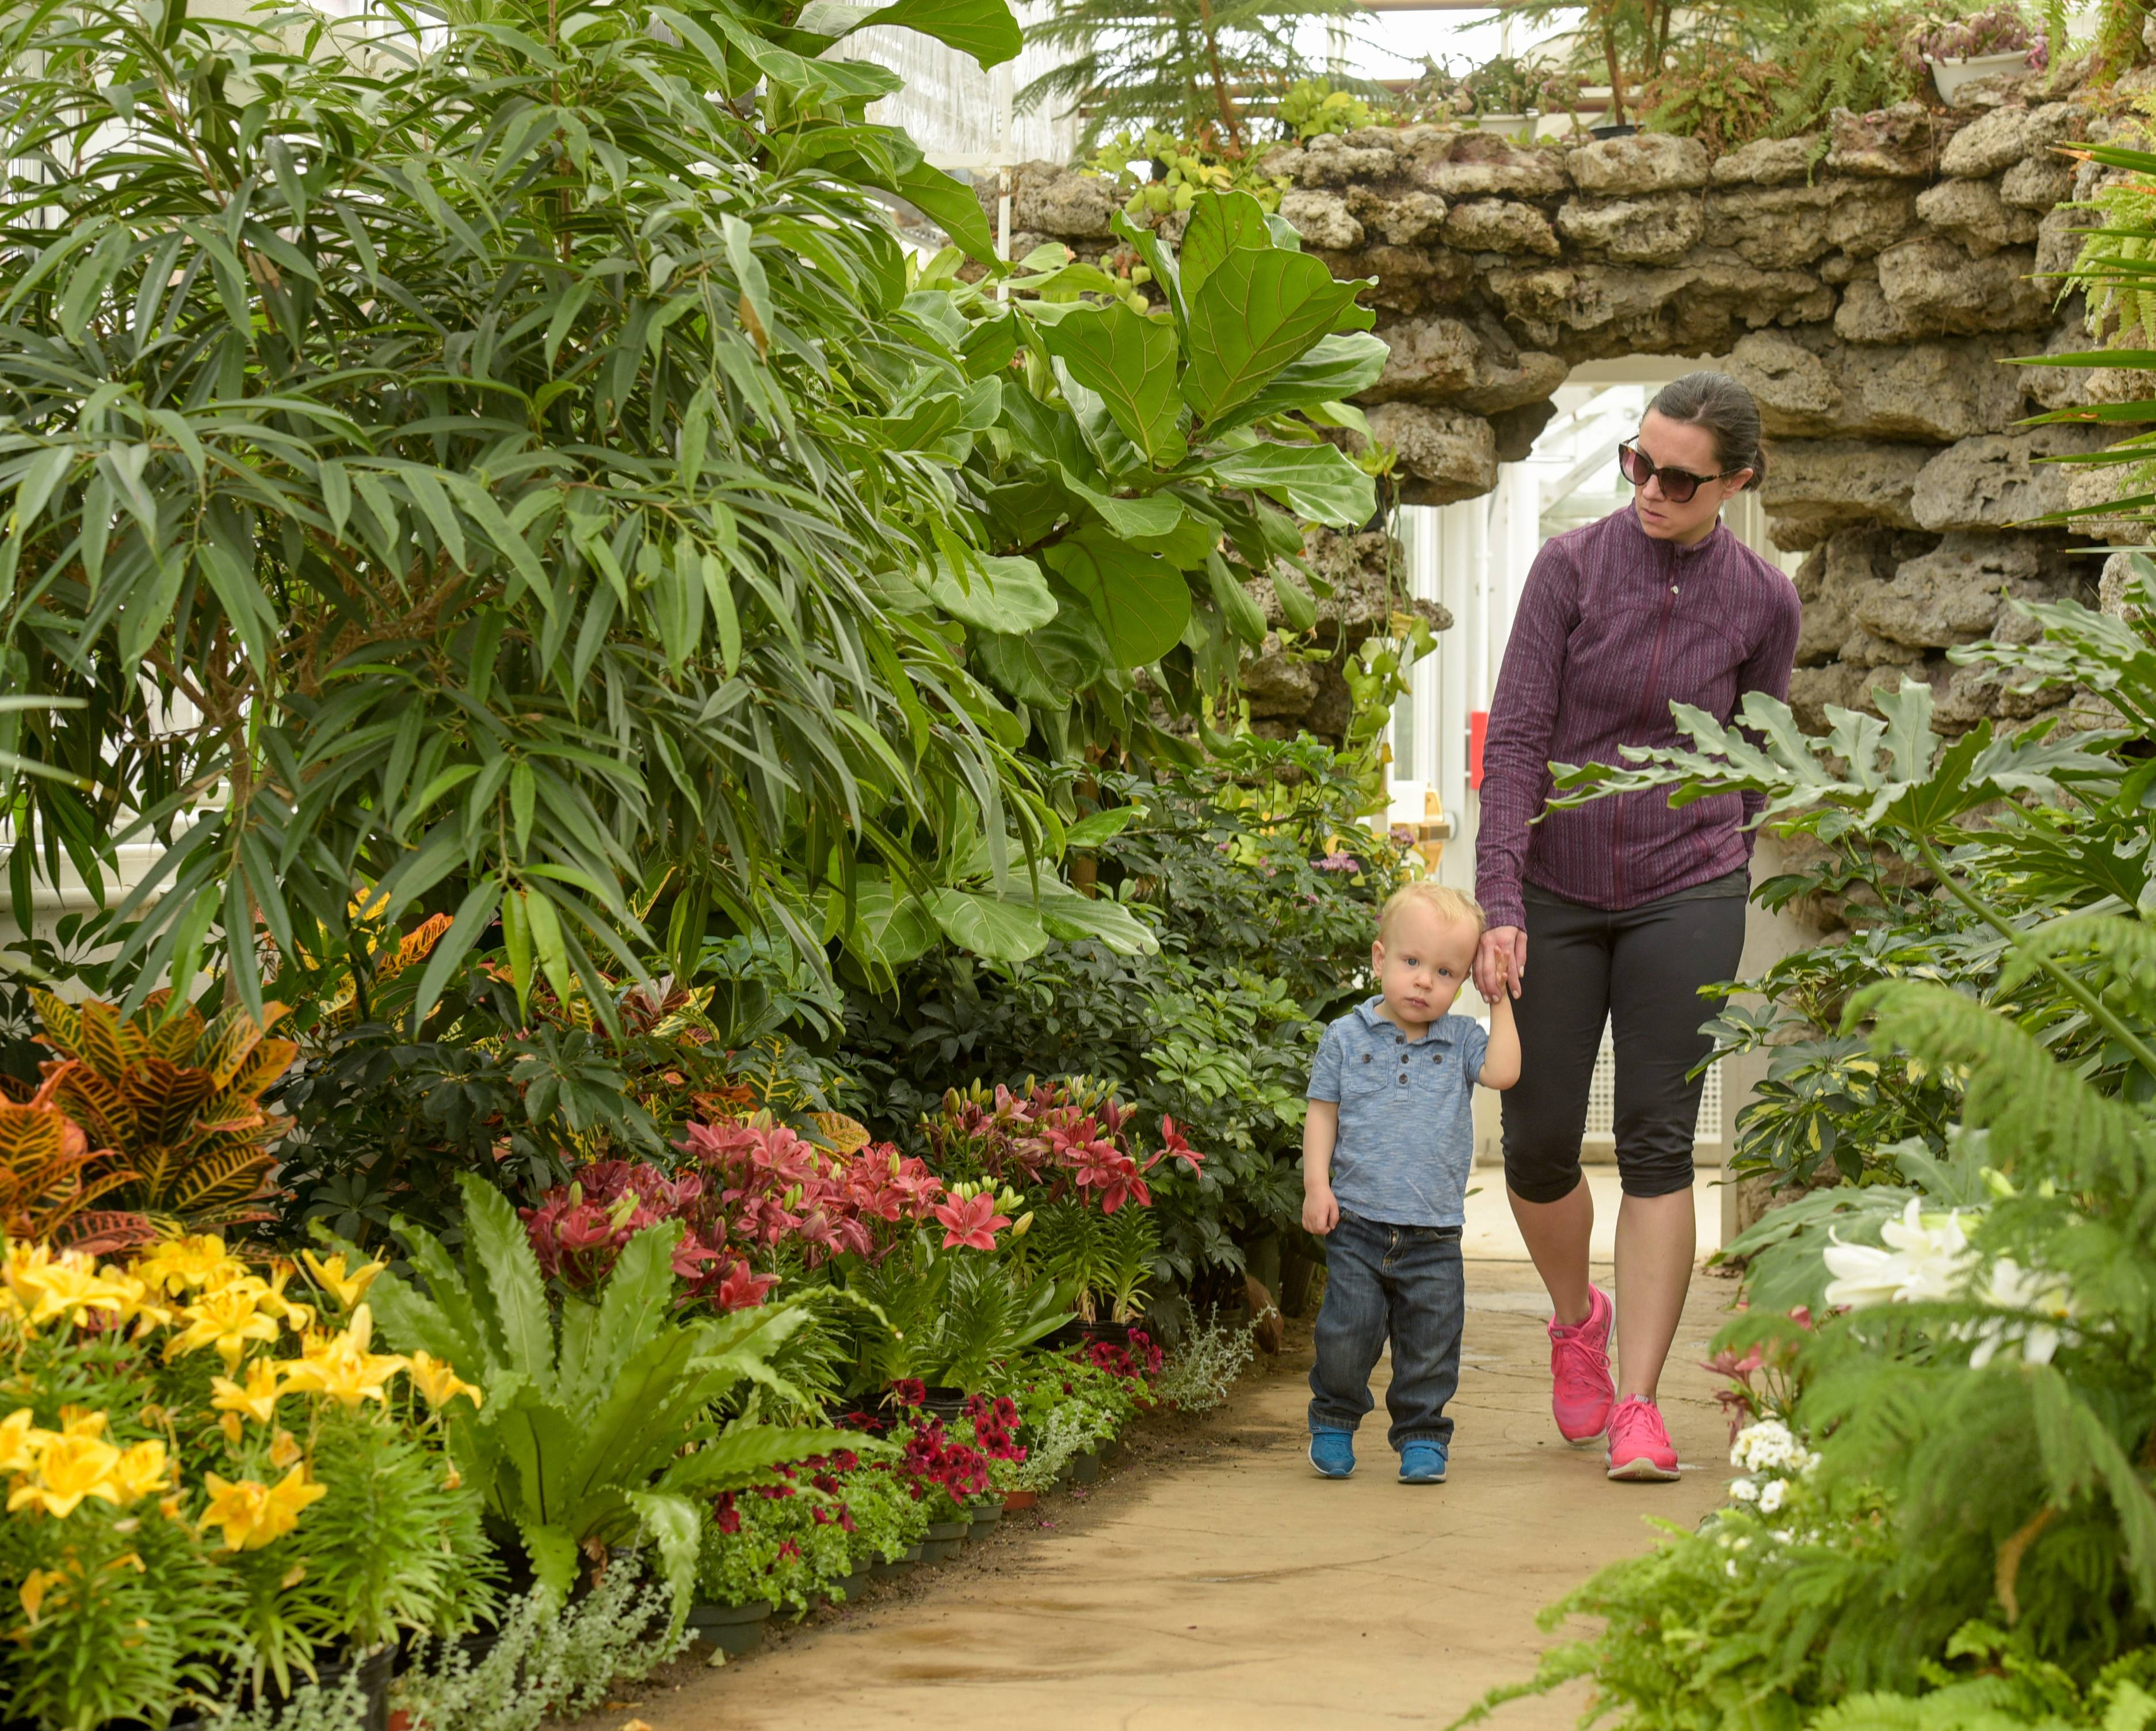 Sarah Honold and her son Graham, 2, of Elmhurst check out the flowers Sunday in the Elmhurst Park District's Wilder Park Conservatory. The conservatory's annual Spring Flower Show run opened this weekend and runs through the end of the month.